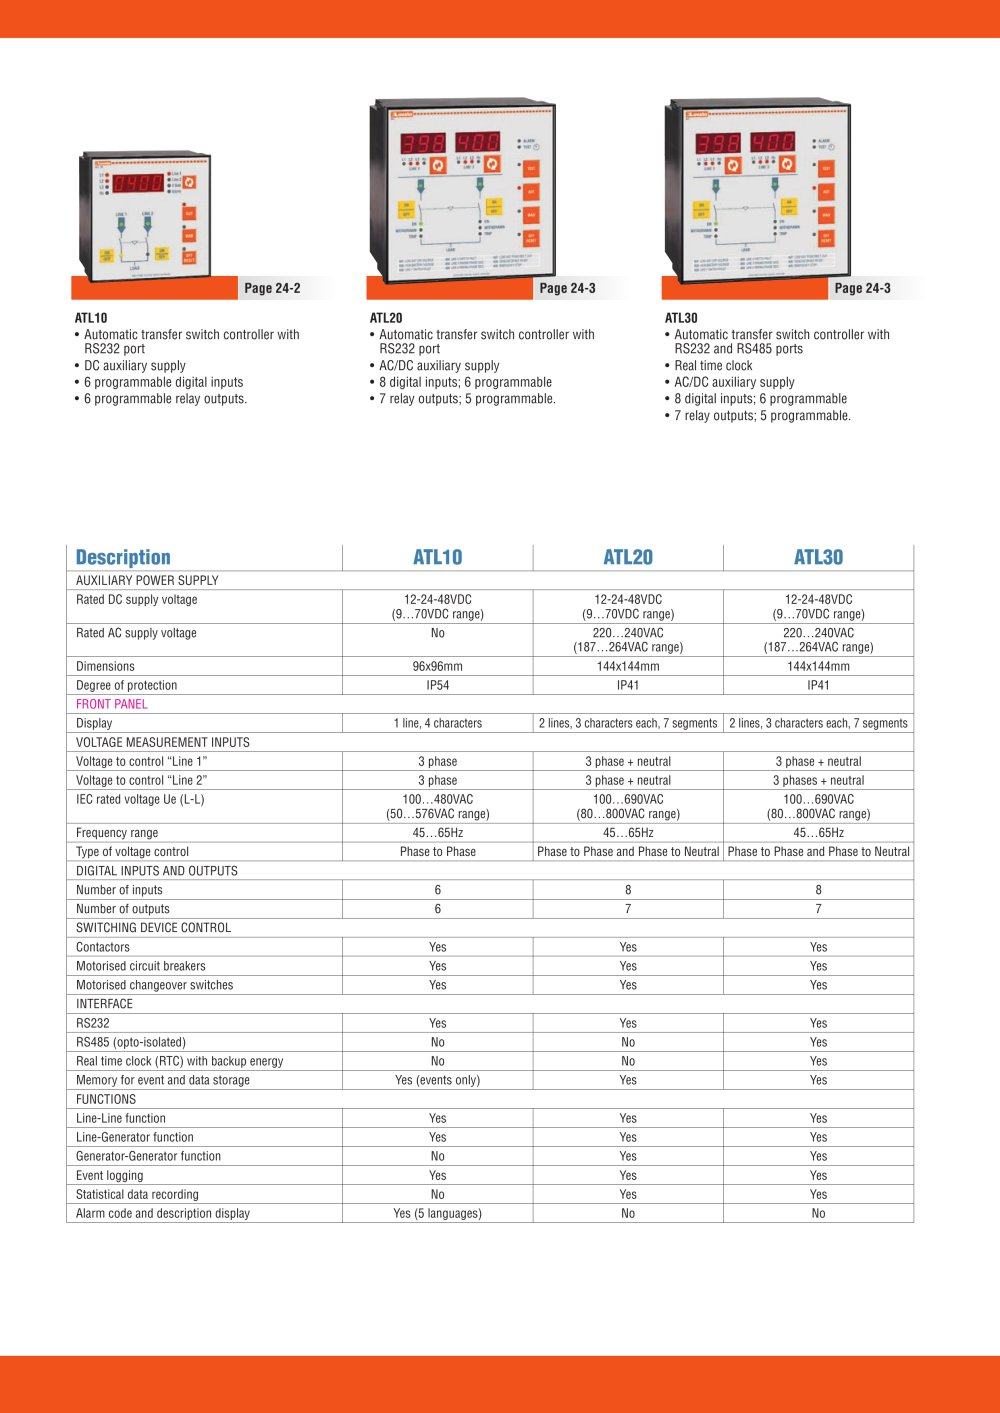 medium resolution of automatic transfer switch controllers 1 6 pages